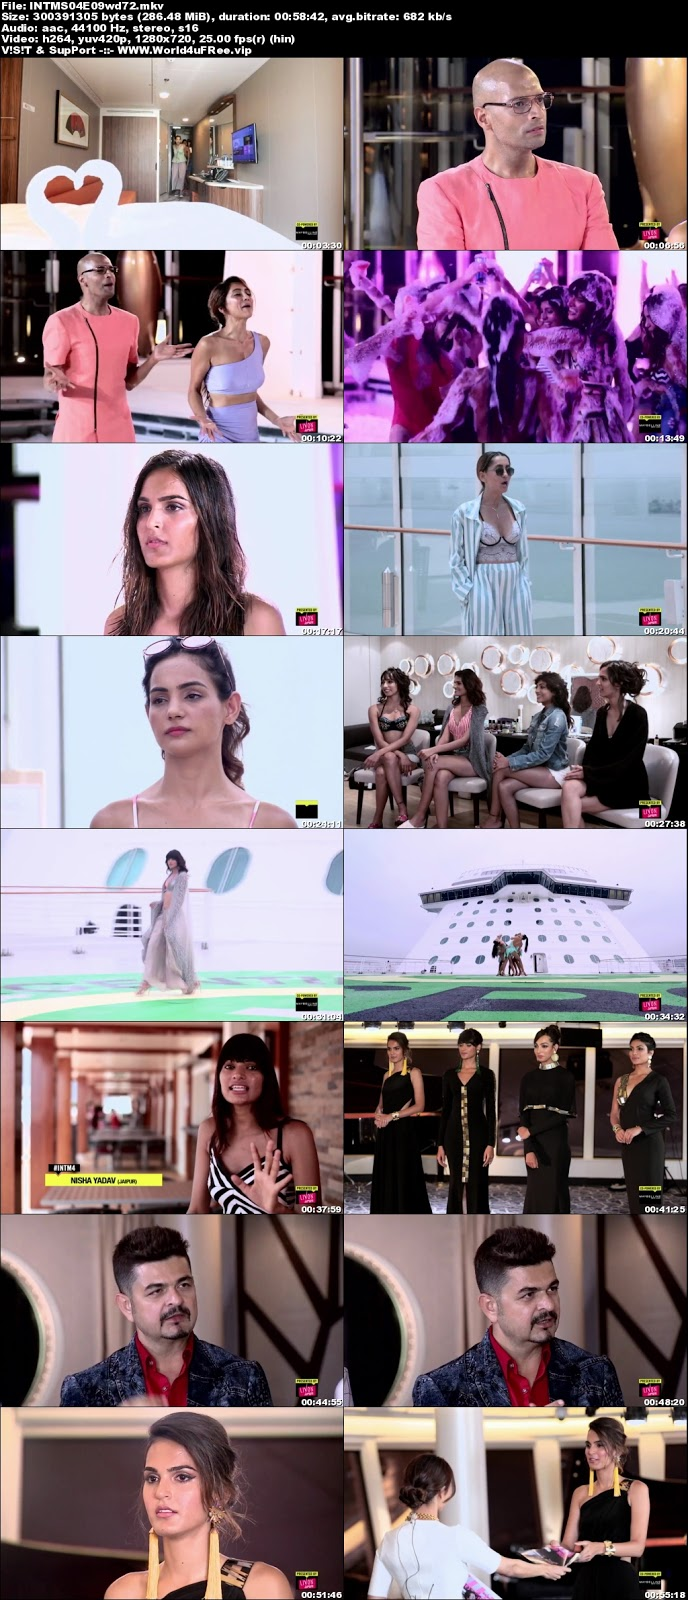 India's Next Top Model S04 Episode 09 720p WEBRip 200Mb world4ufree.vip tv show India's Next Top Model S04 2018 hindi MTV tv show compressed small size free download or watch online at world4ufree.vip